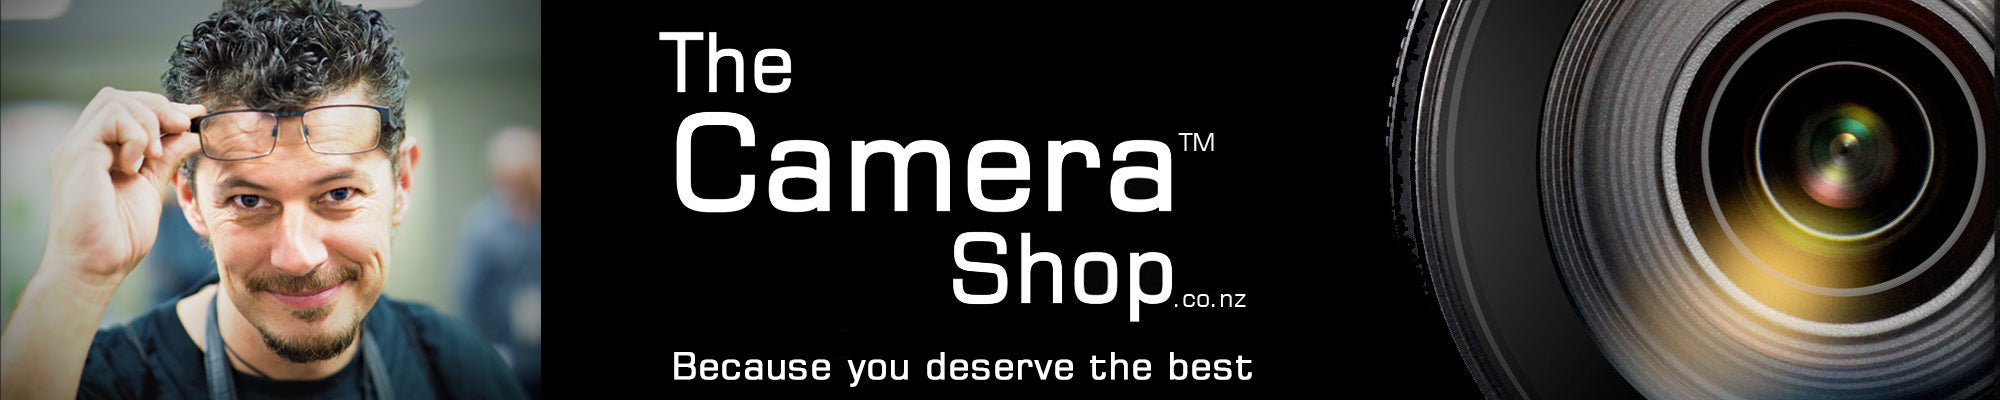 TheCameraShop.co.nz